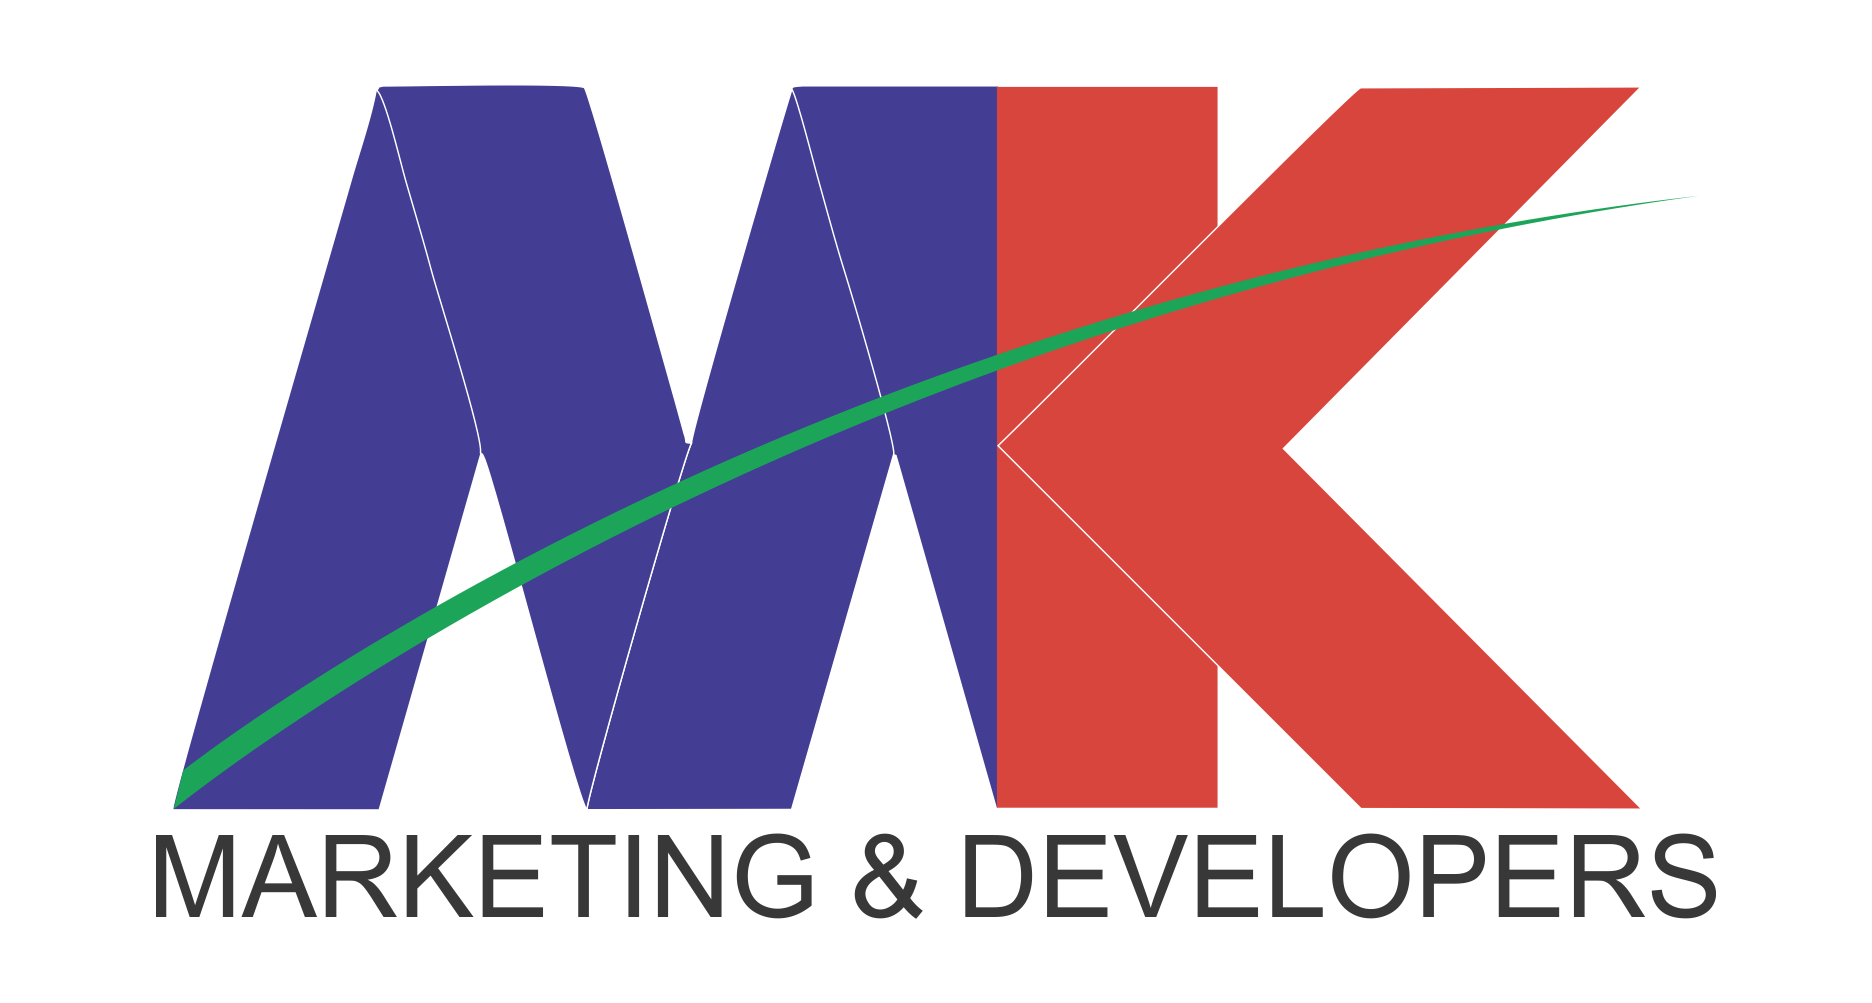 MK Marketing & Developers